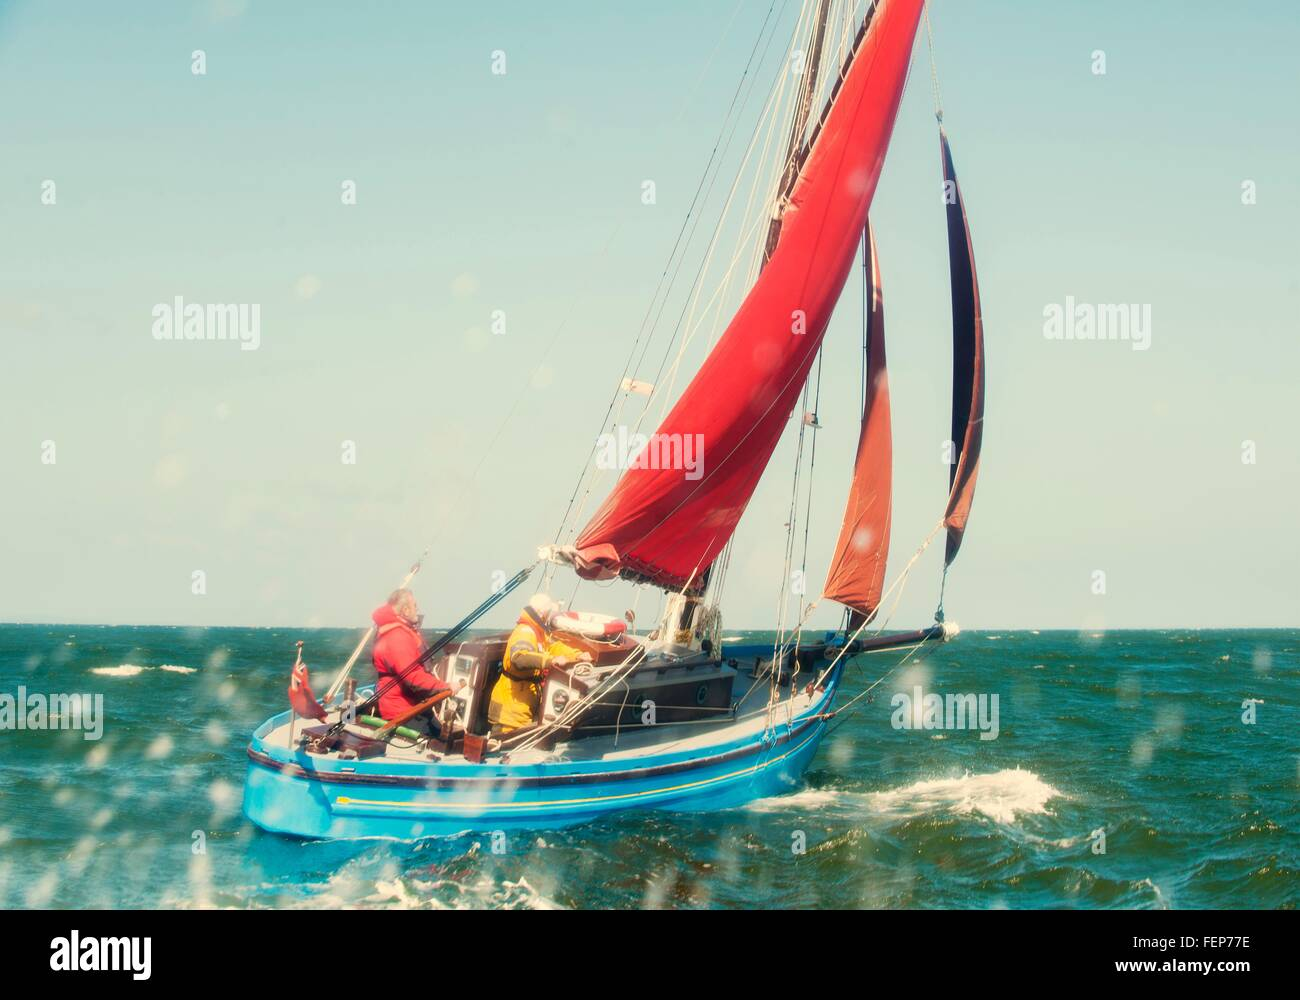 Two men on sailing boat - Stock Image